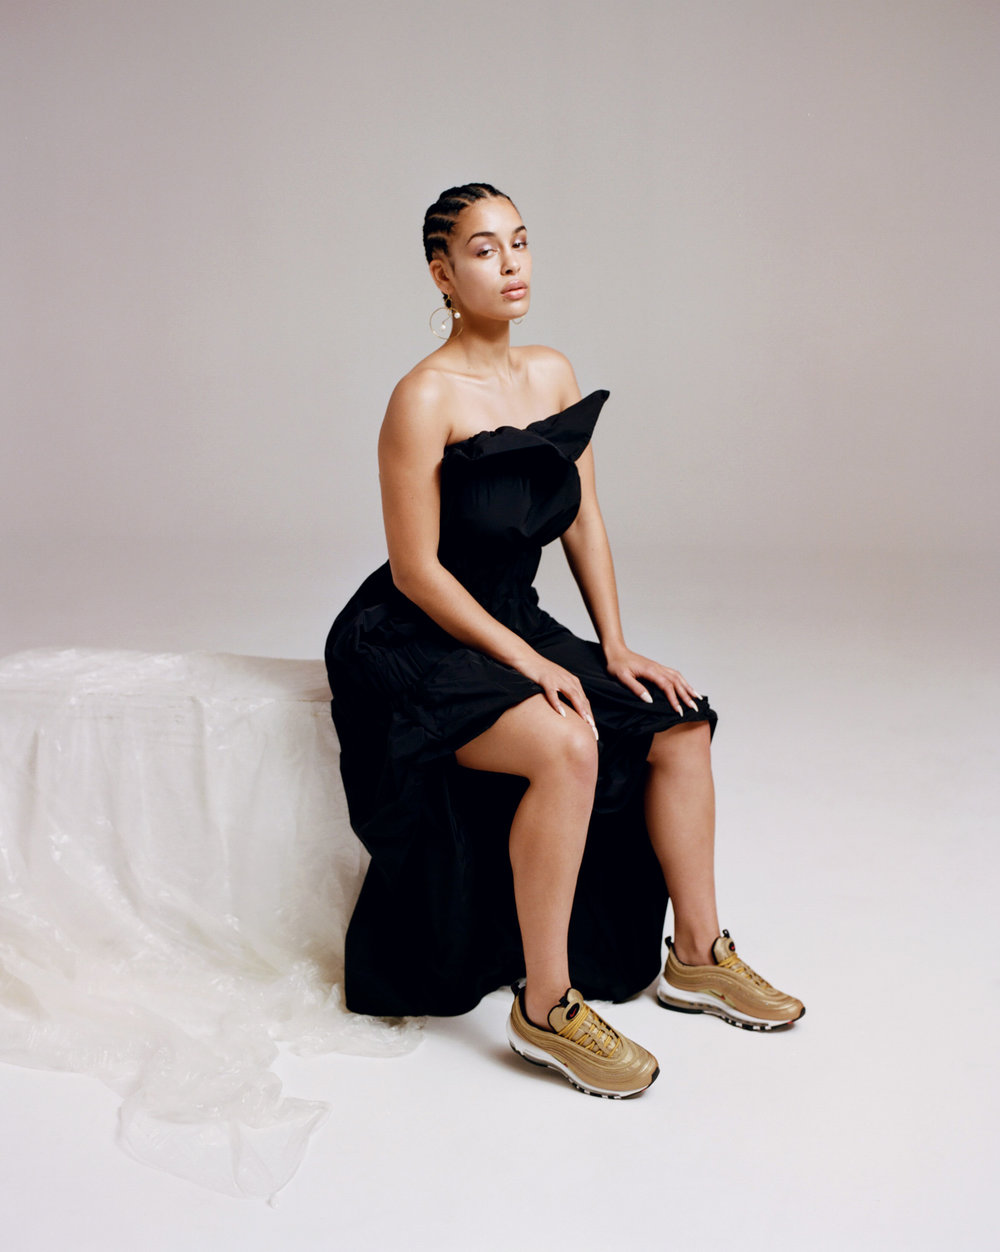 Jorja Smith - Crack Magazine cover story